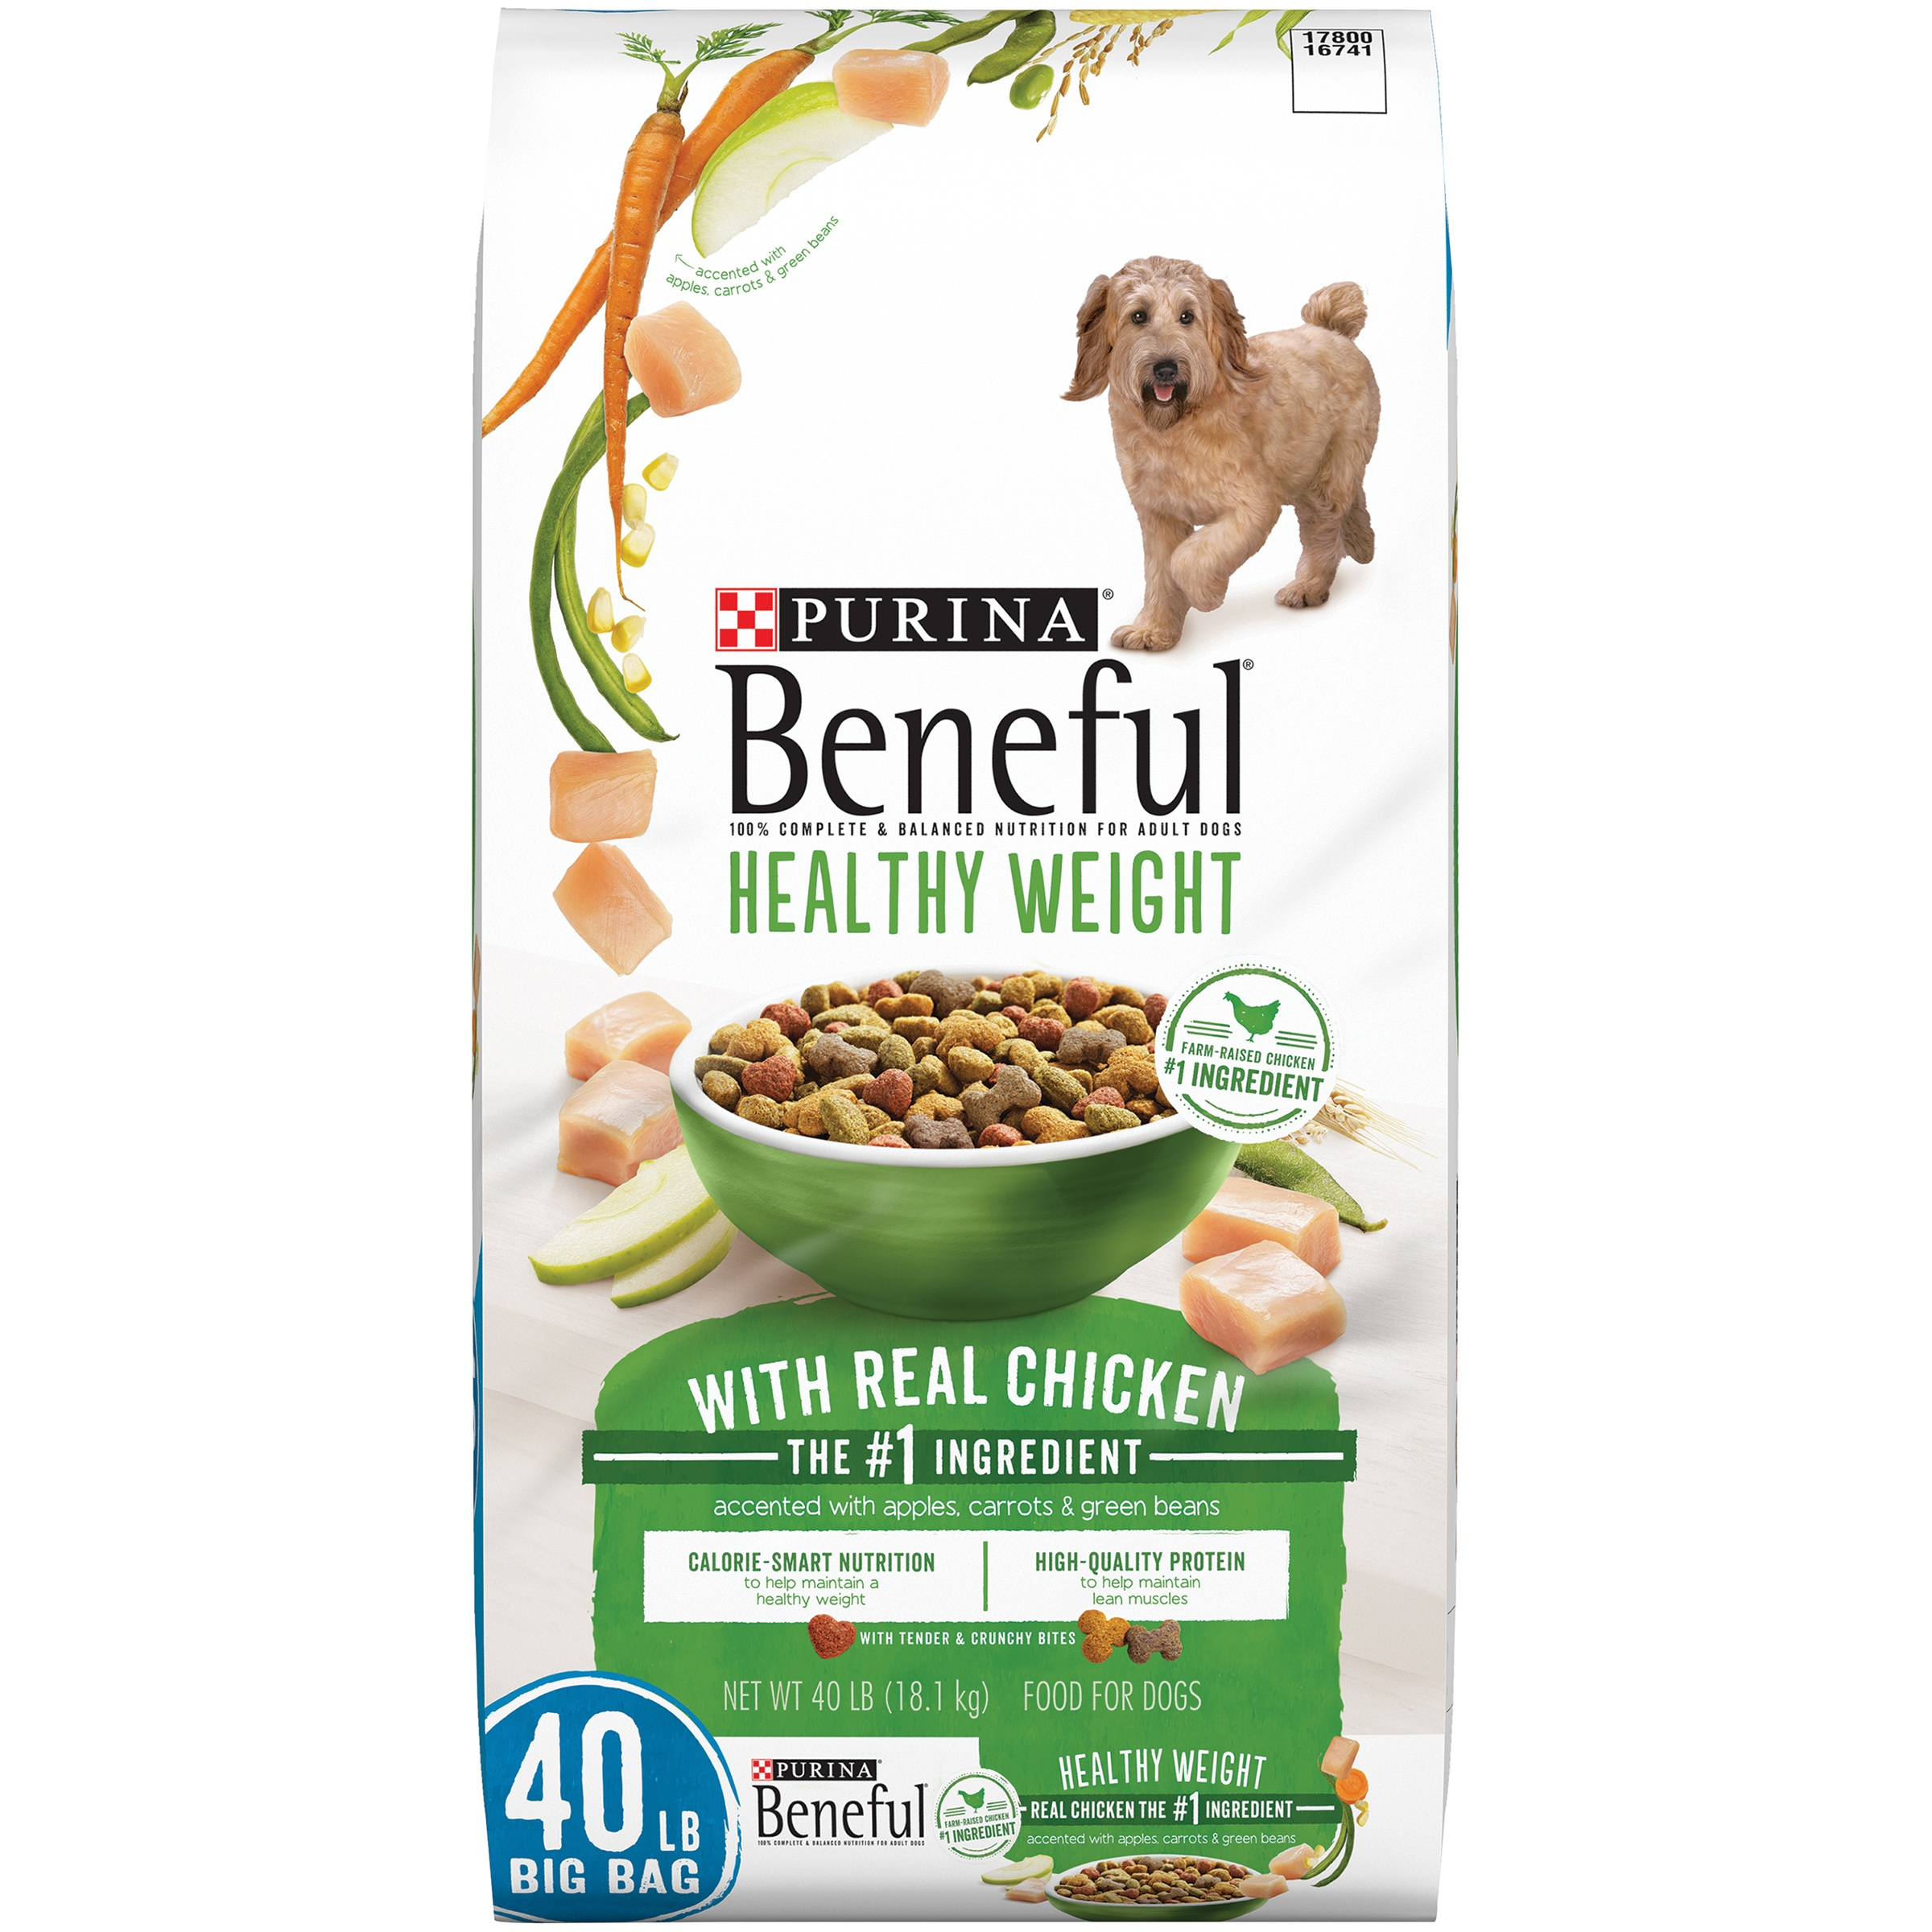 Purina Beneful Healthy Weight with Real Chicken Food for Dogs 40lb.